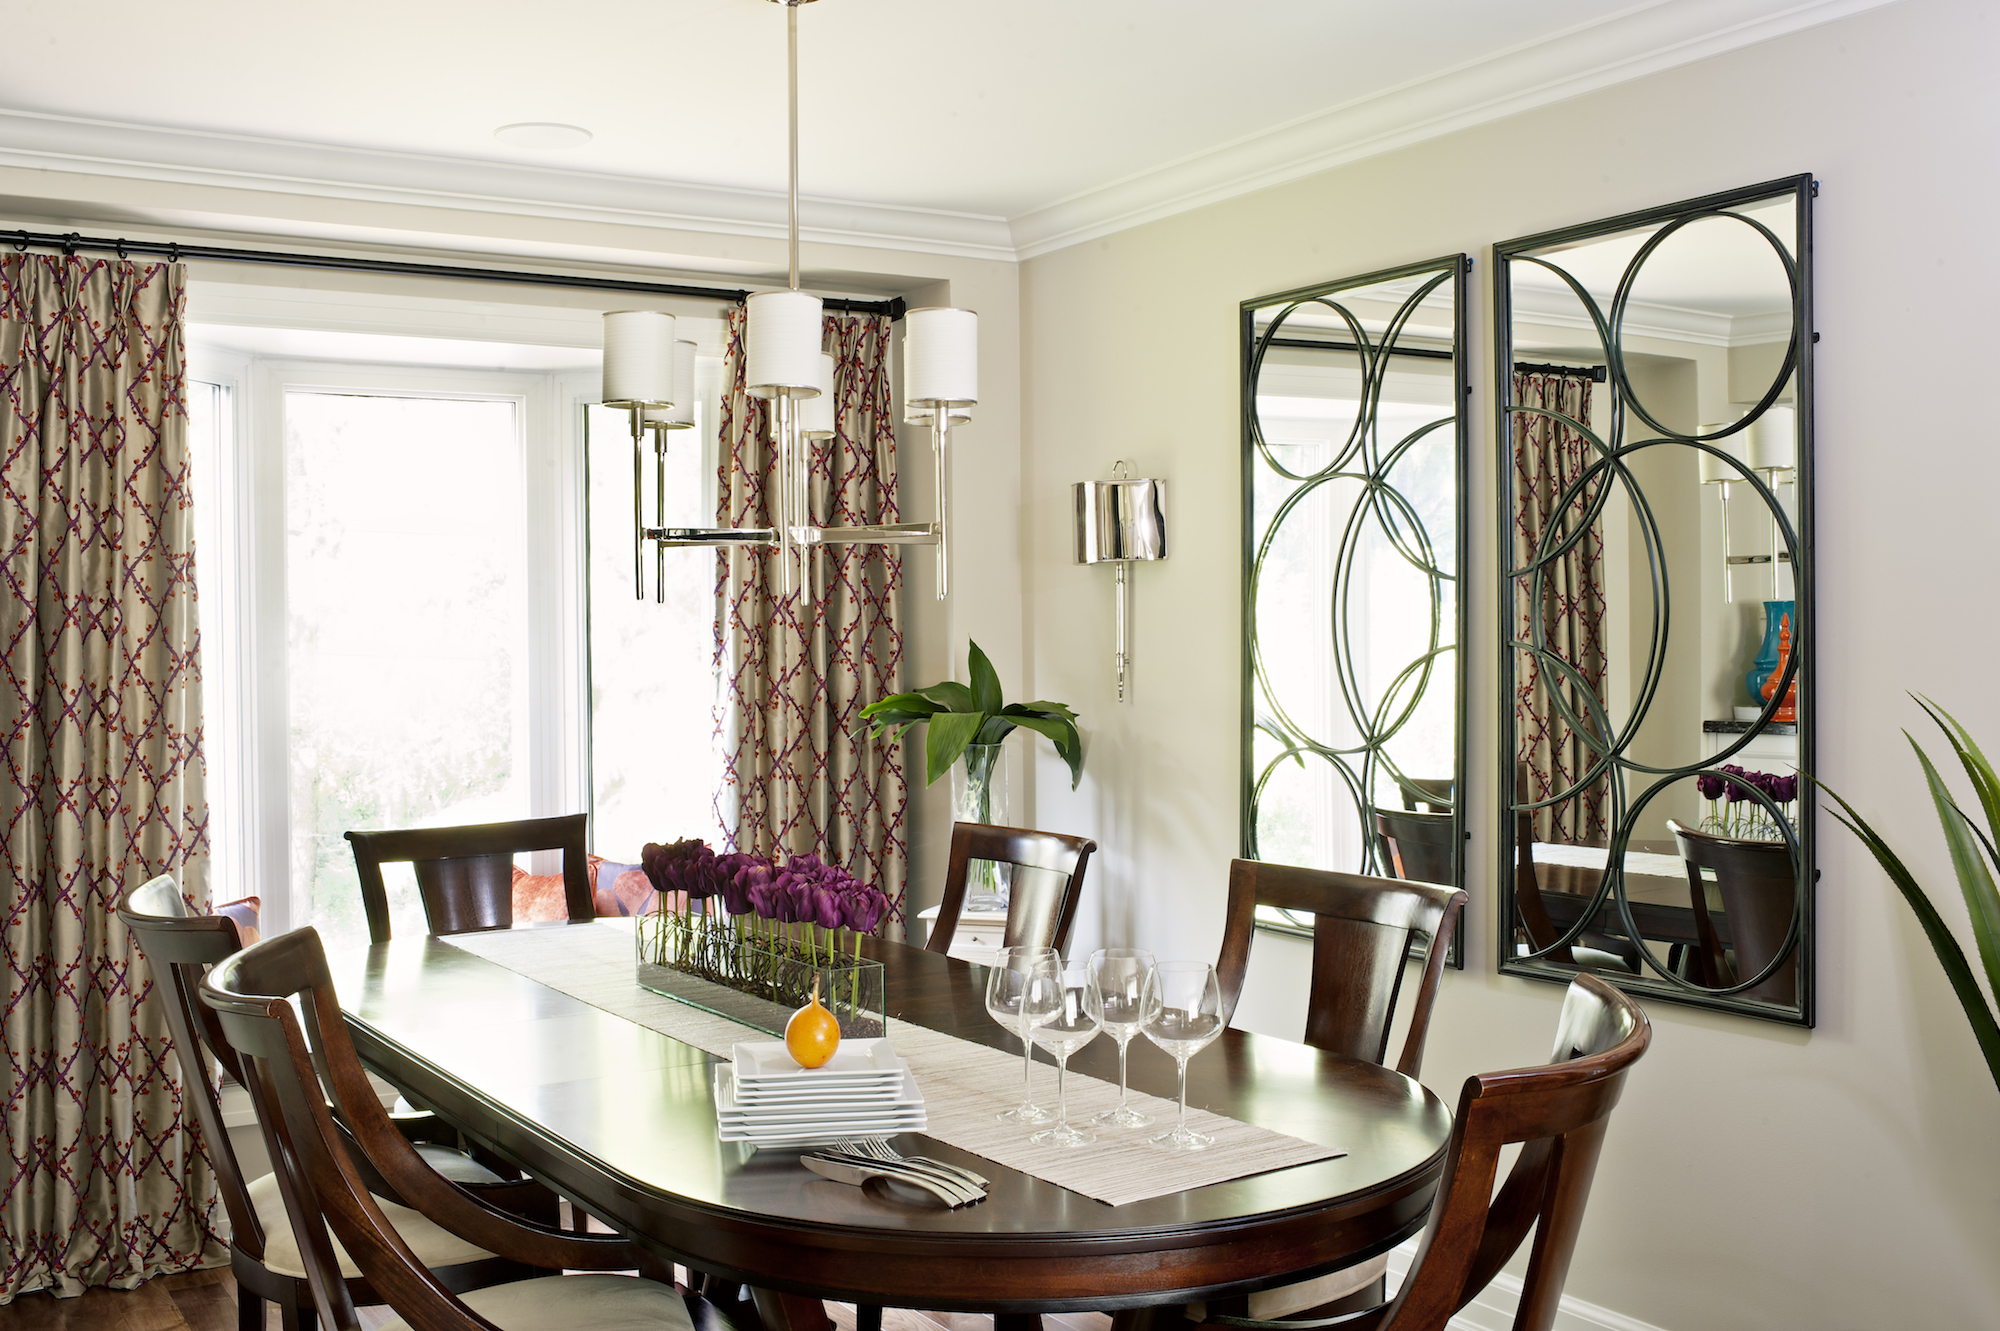 5- Pizzale Design Interior Decorating Dining Room Purple Accents Beige.jpg